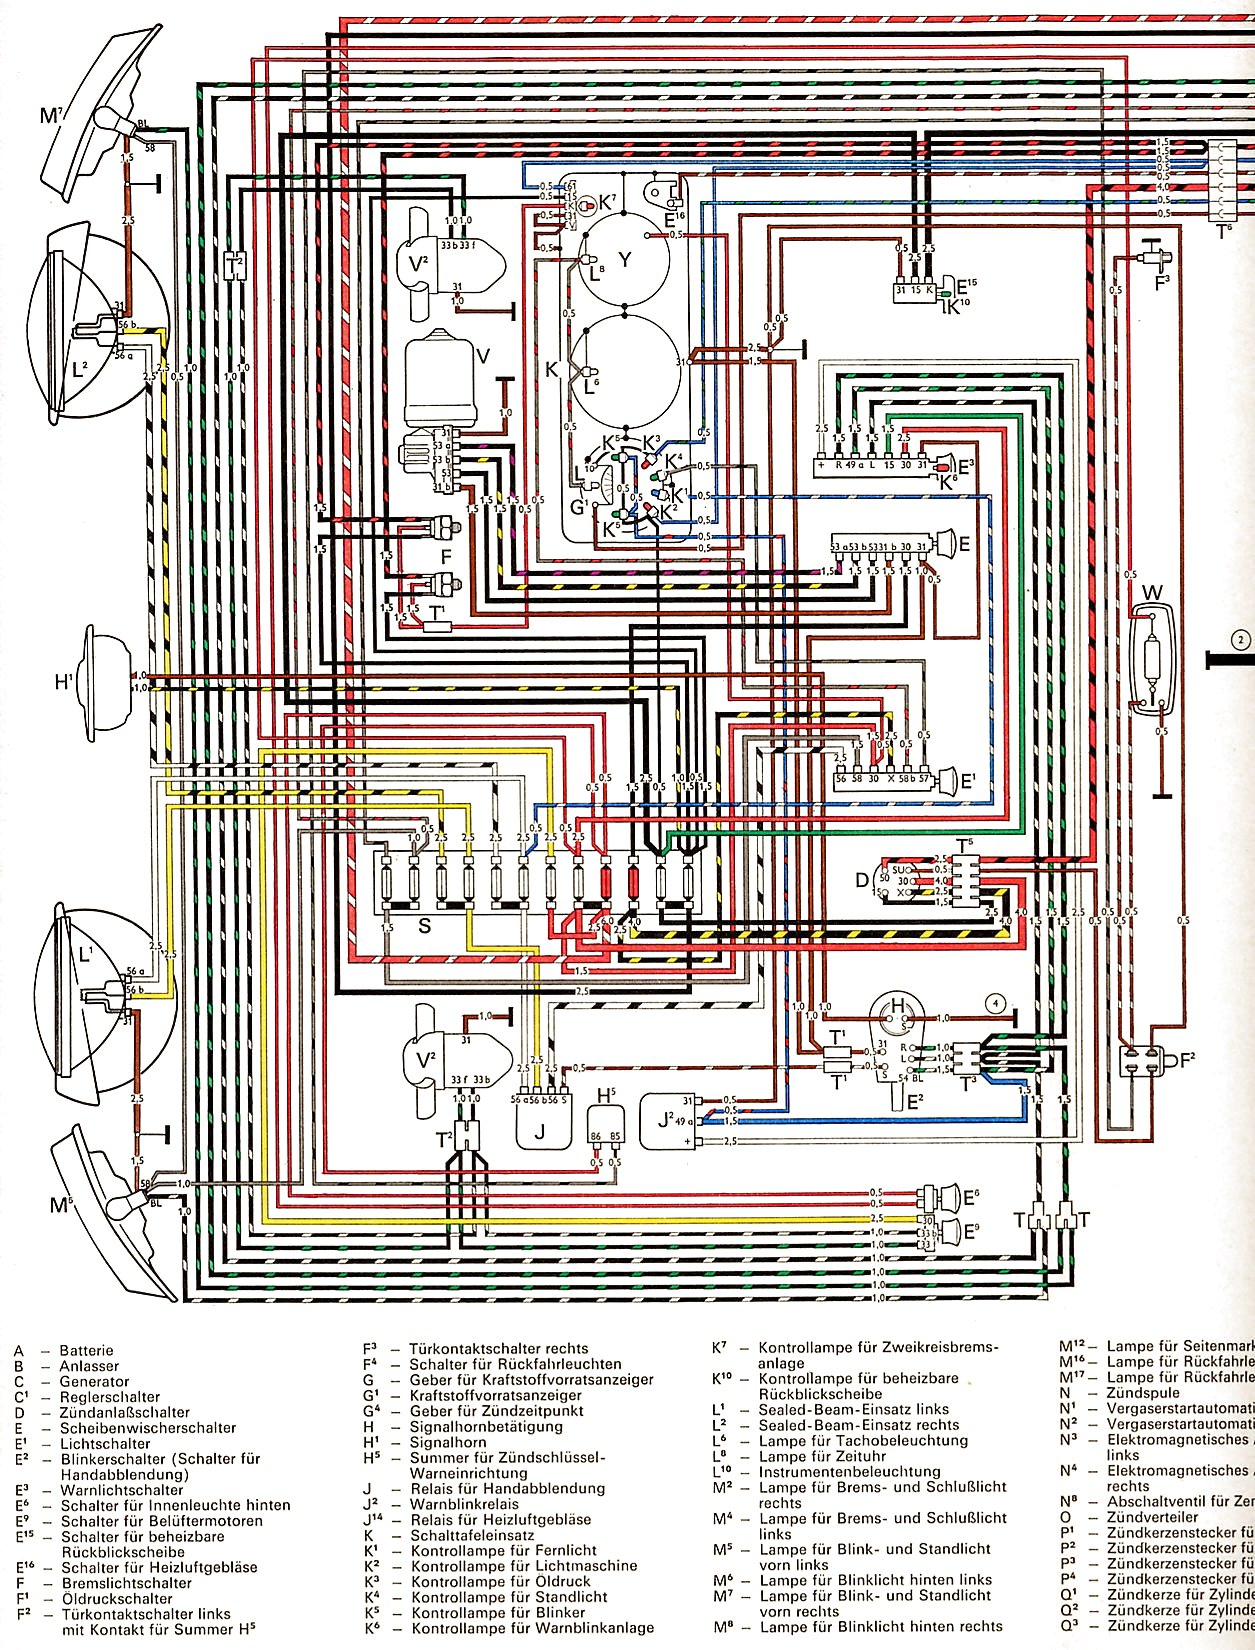 Super 1977 Vw T3 Engine Diagram Basic Electronics Wiring Diagram Wiring Cloud Ratagdienstapotheekhoekschewaardnl